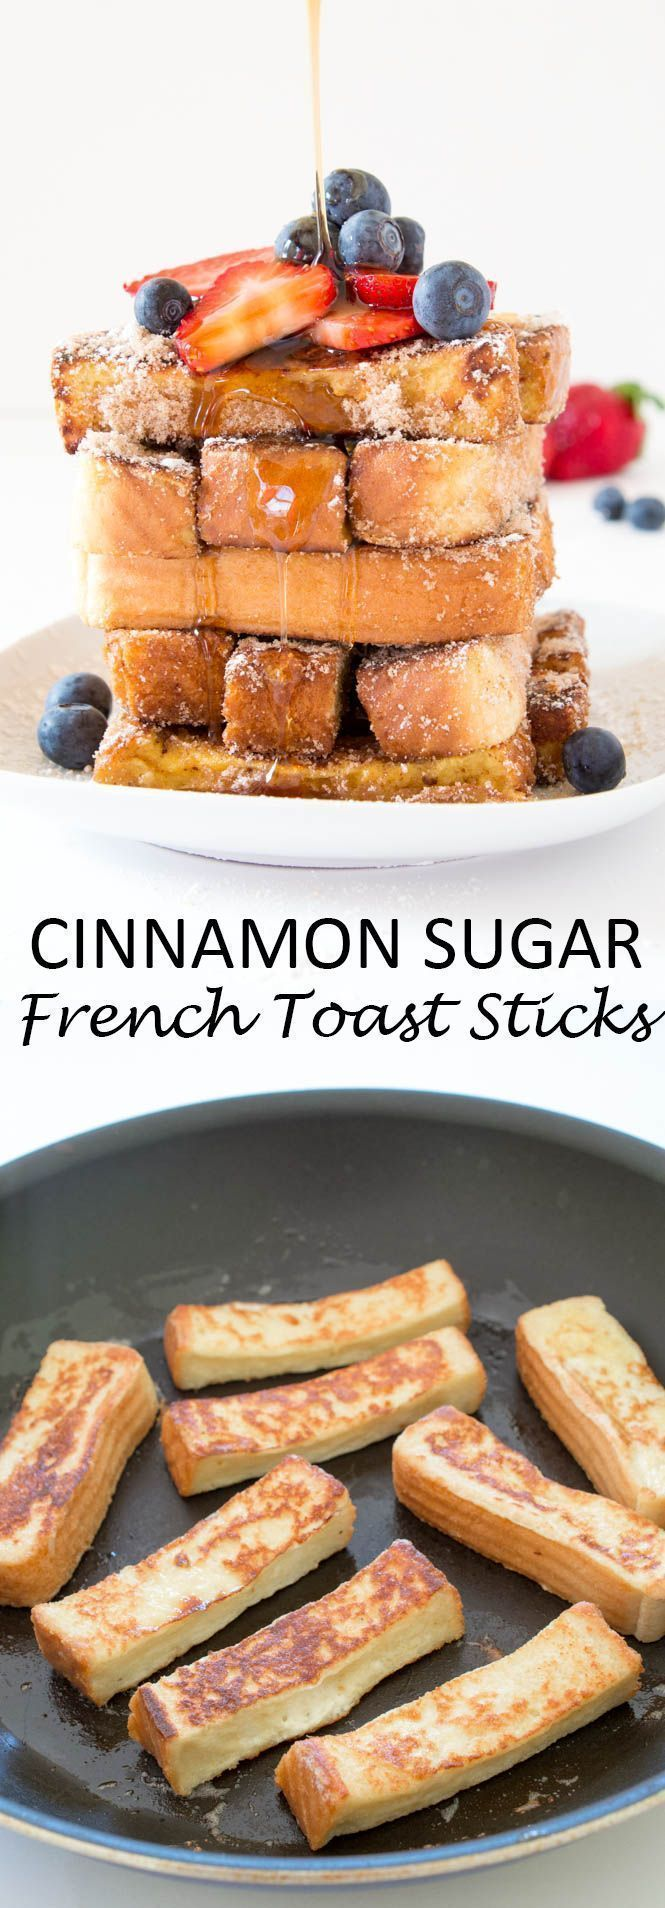 Treat yourself with these cinnamon sugar French toast sticks!